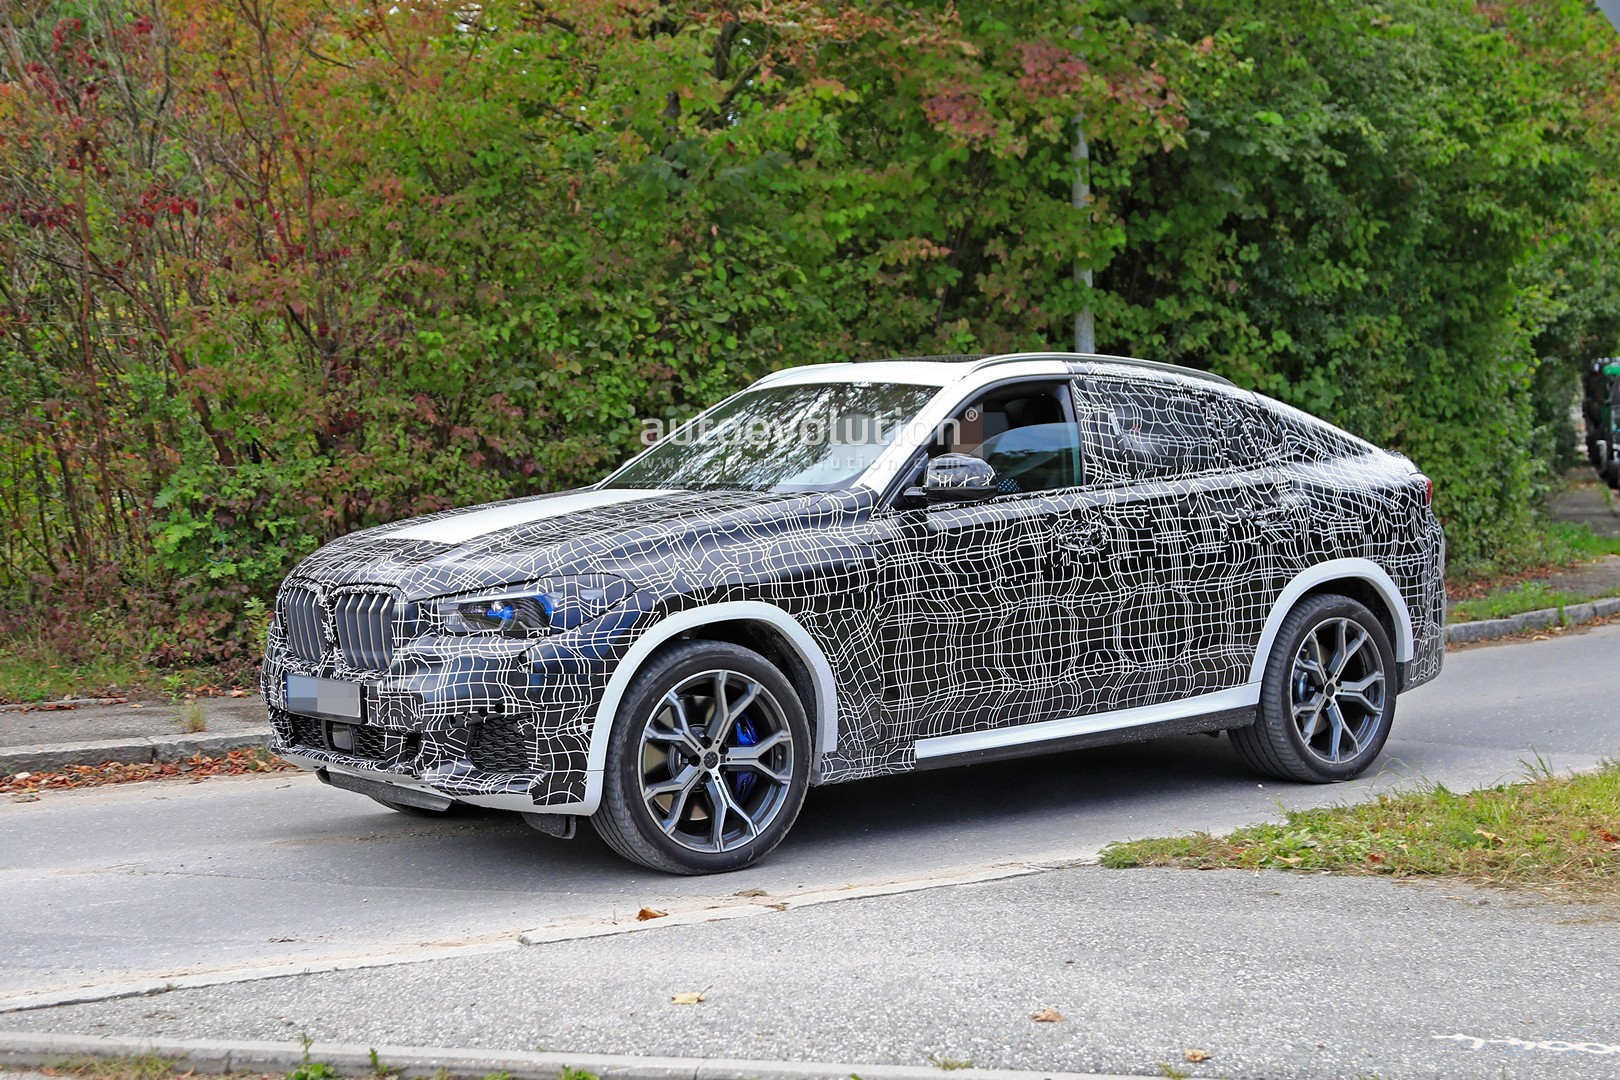 2020 Bmw X6 M50i And X6 M Could Be Epic Autoevolution